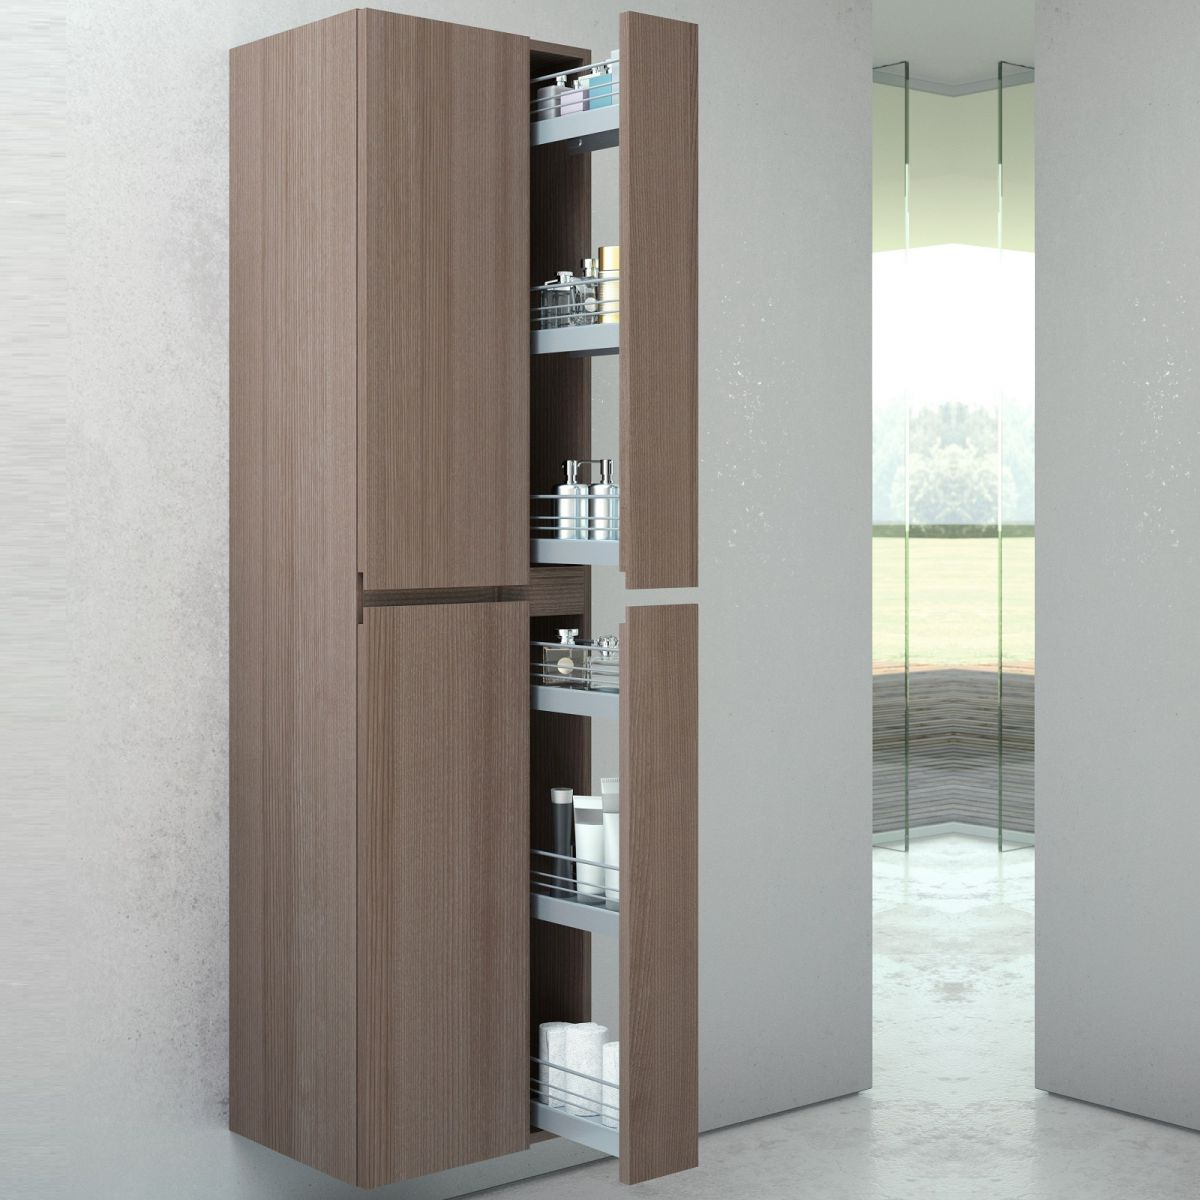 Vitra memoria tall cabinet with pull out storage uk - Bathroom cabinet organizers pull out ...